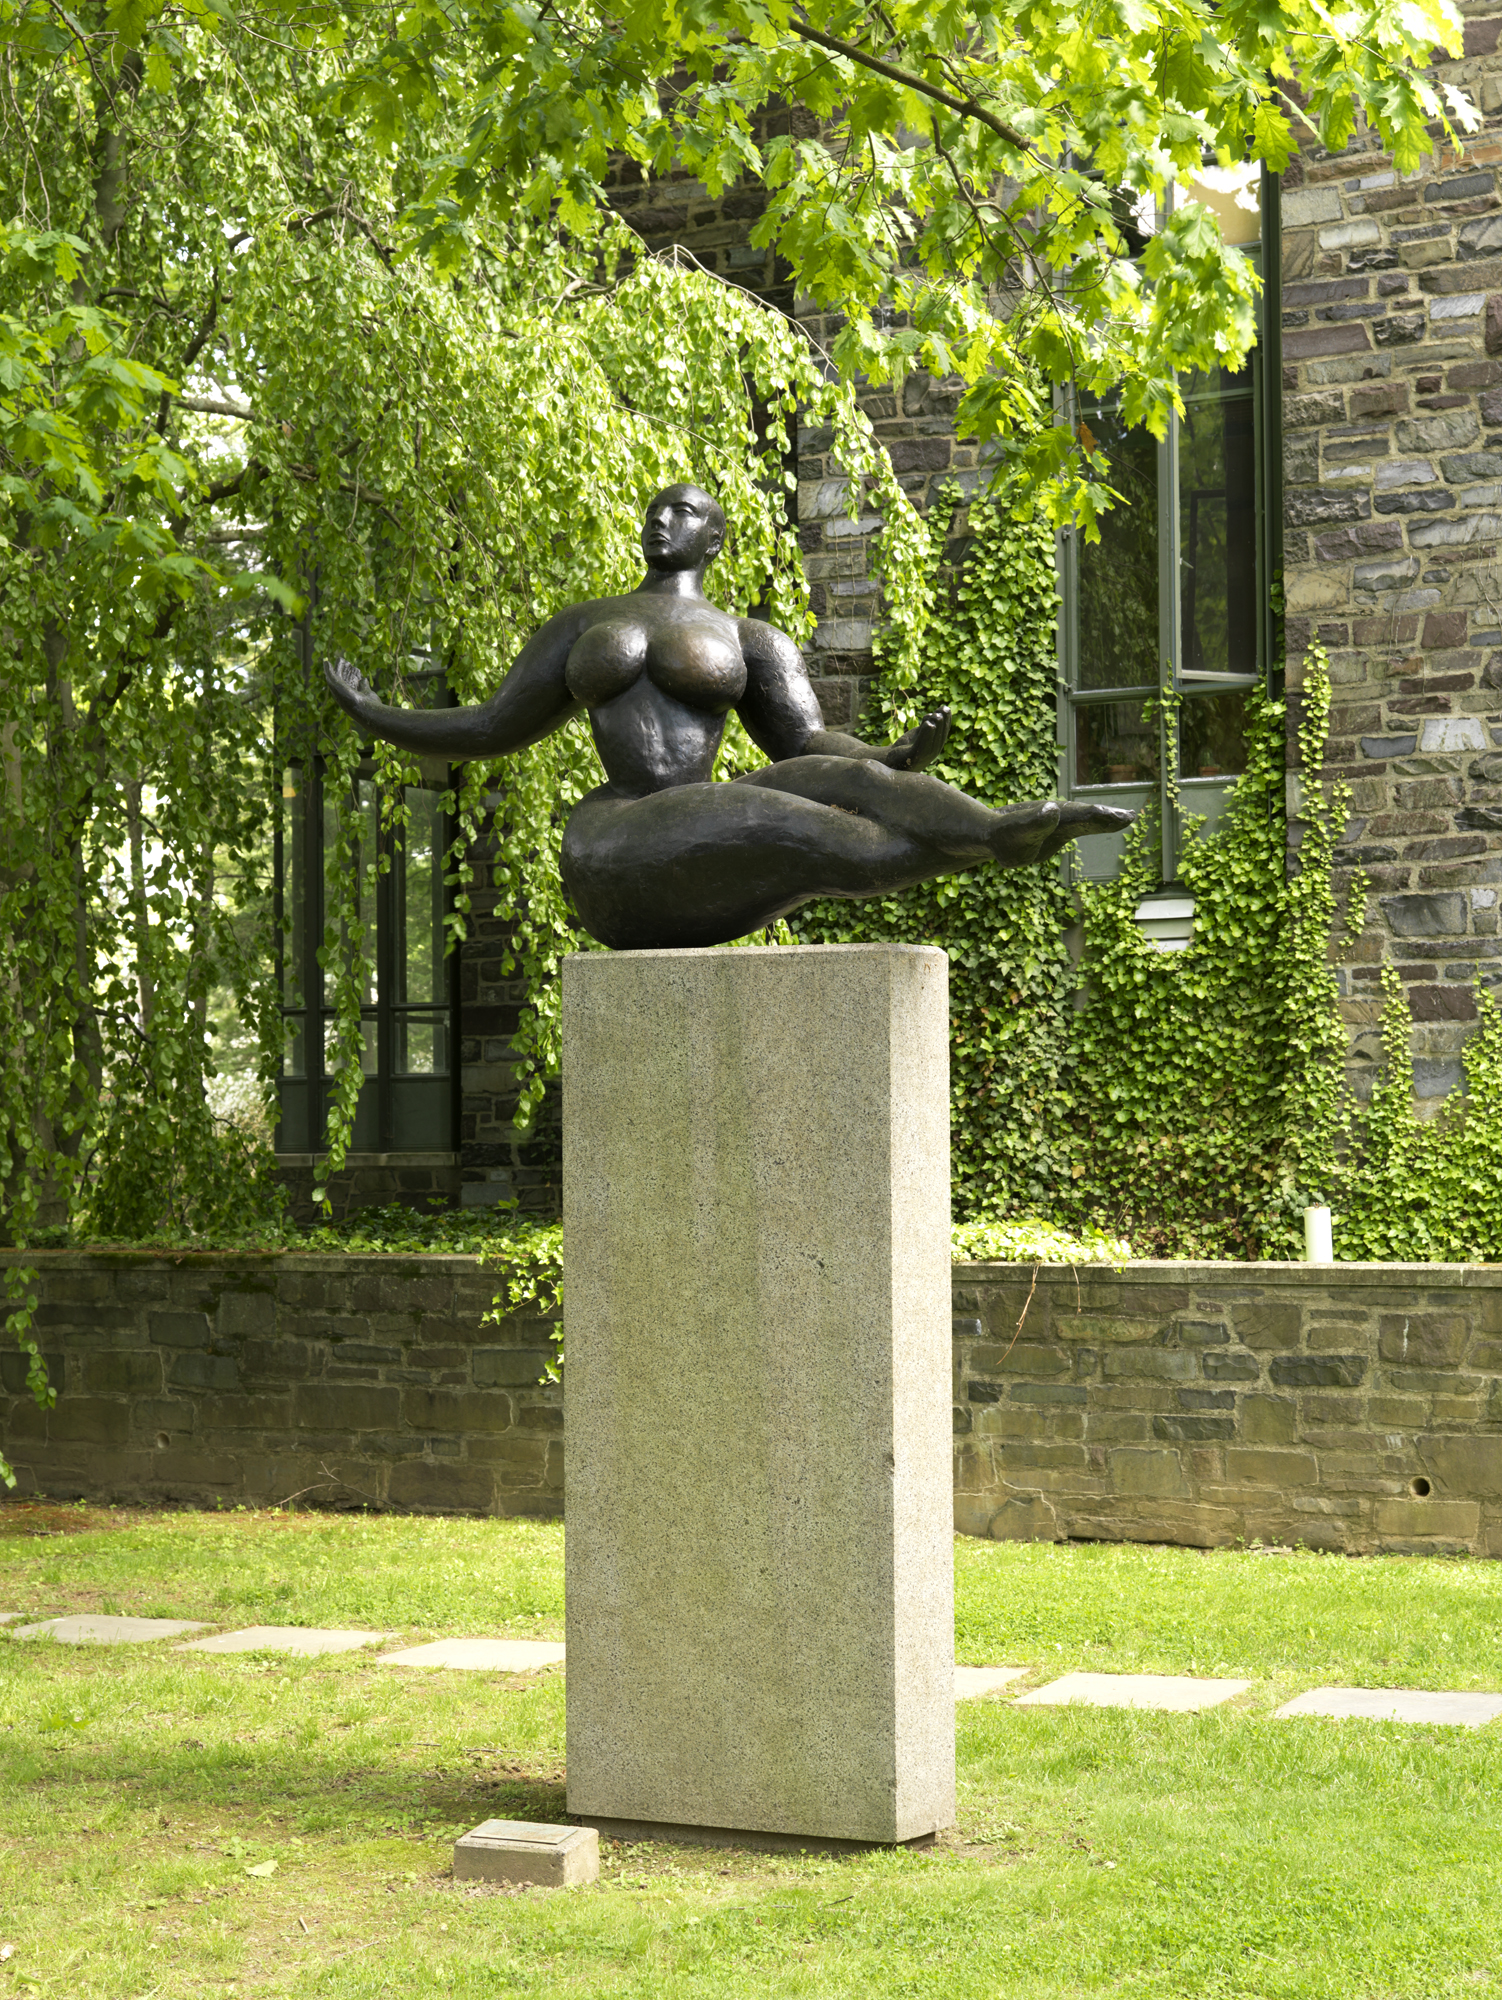 Gaston Lachaise, American, 1882–1935: Floating Figure, 1927. Cast bronze, h. 131.5 cm, l. 218.5 cm. The John B. Putnam Jr. Memorial Collection, Princeton University (y1969-72). Photo: Bruce M. White